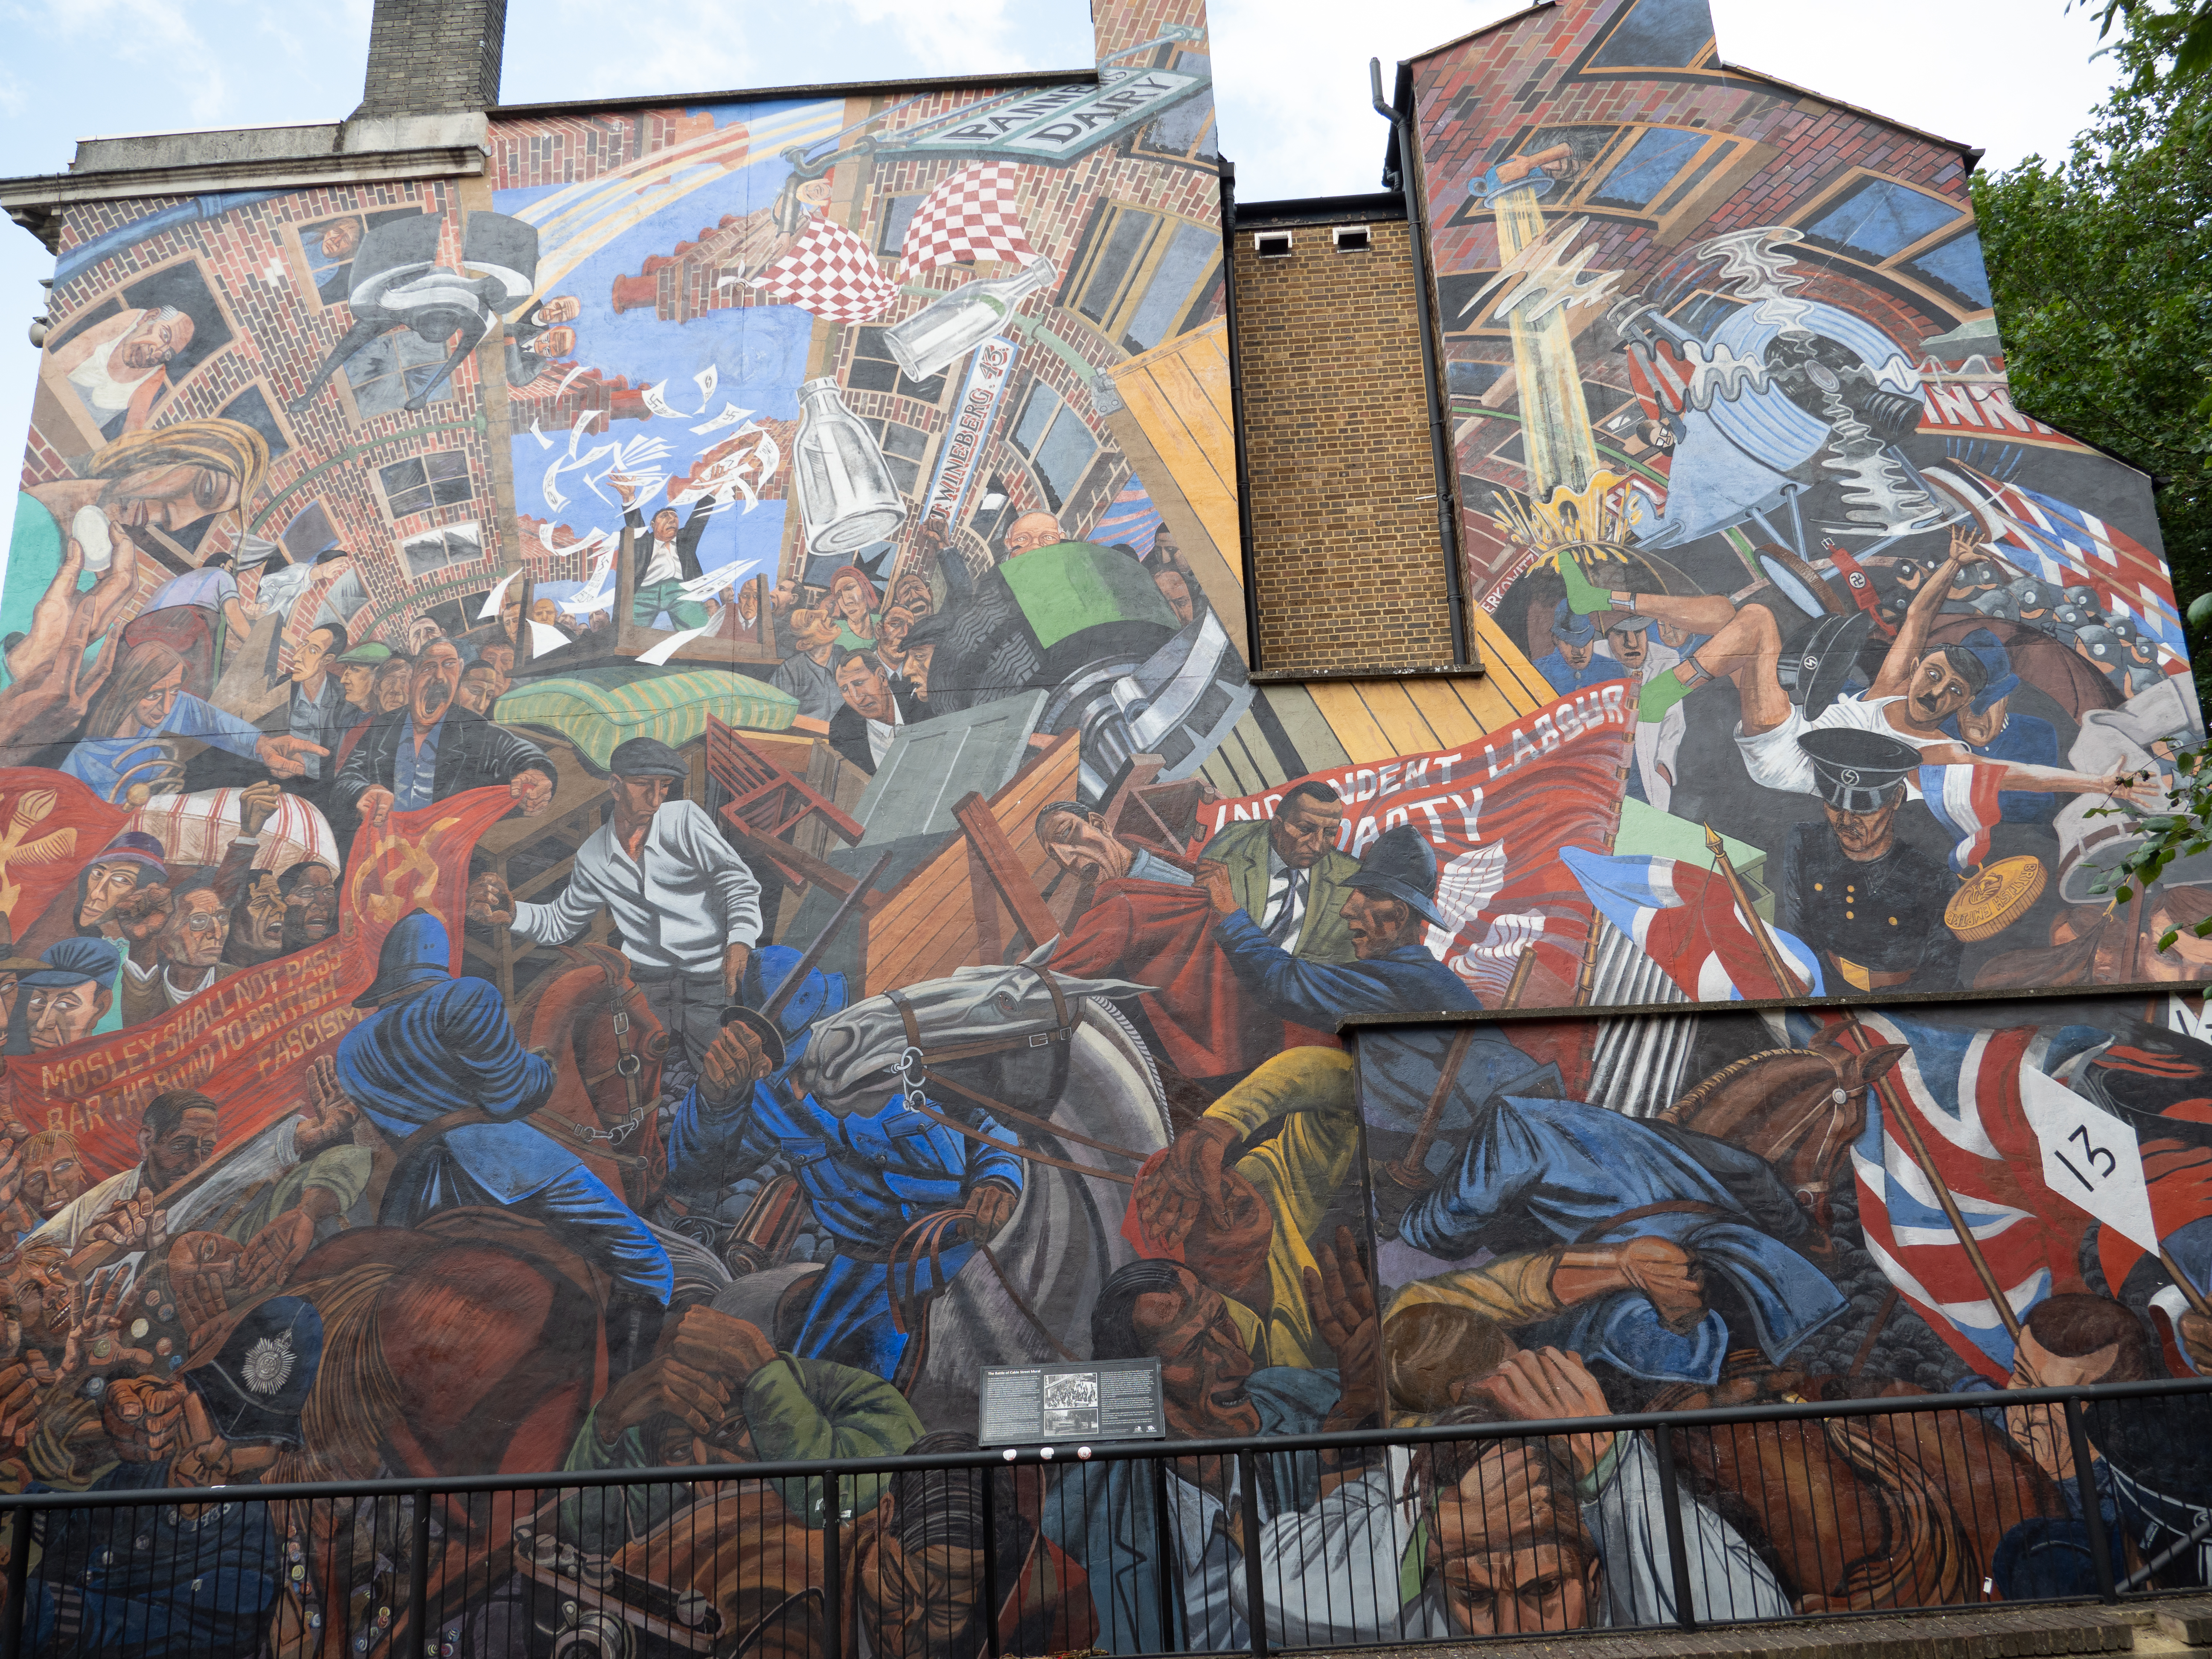 A photograph of the mural described in the paragraph above.